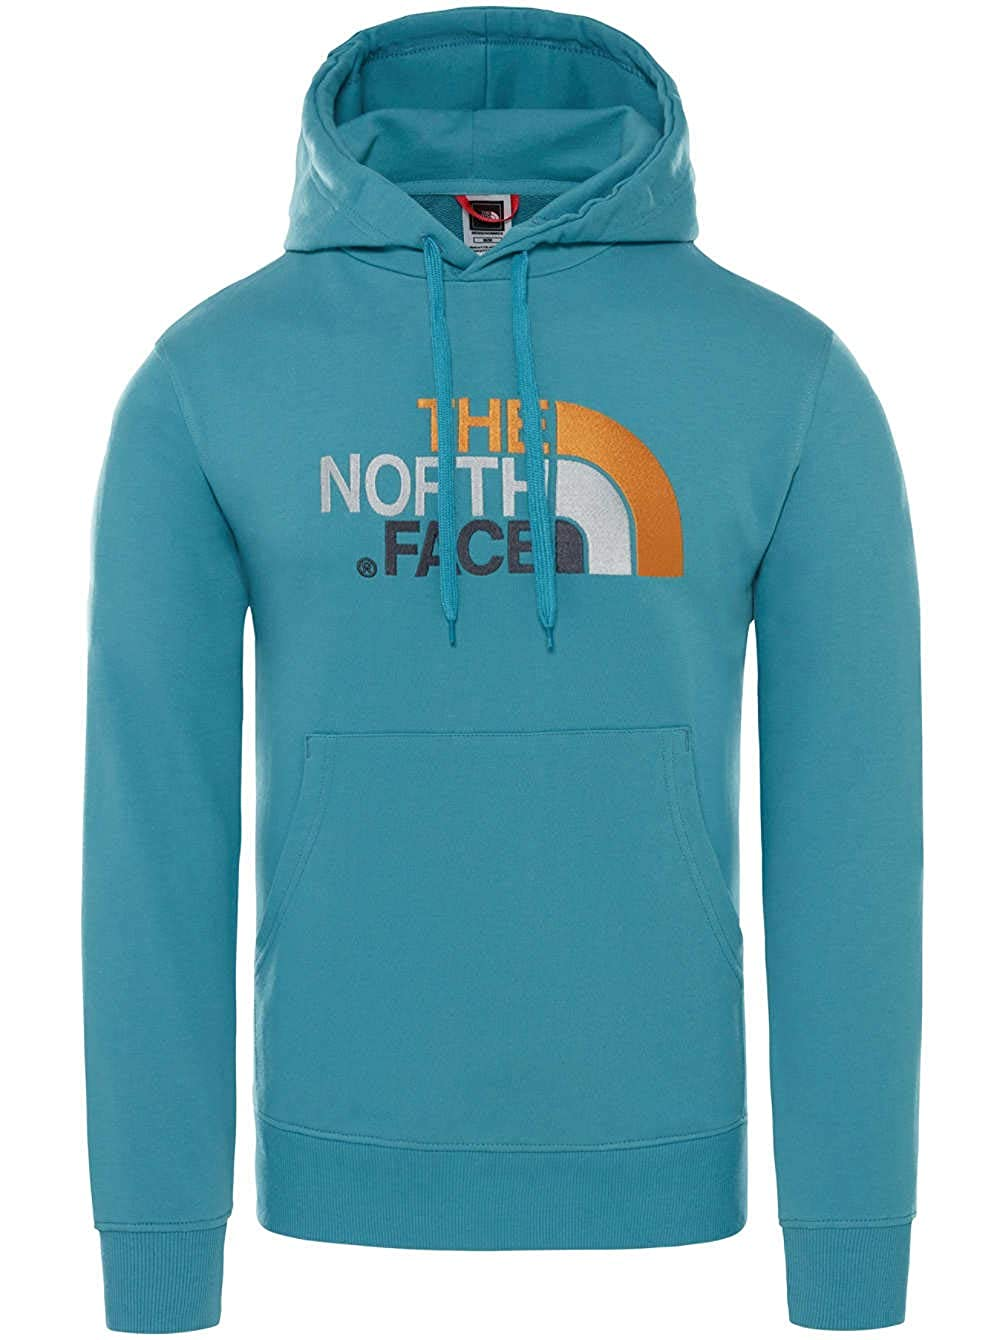 TALLA M. The North Face Light Drew Peak Sudadera, Hombre